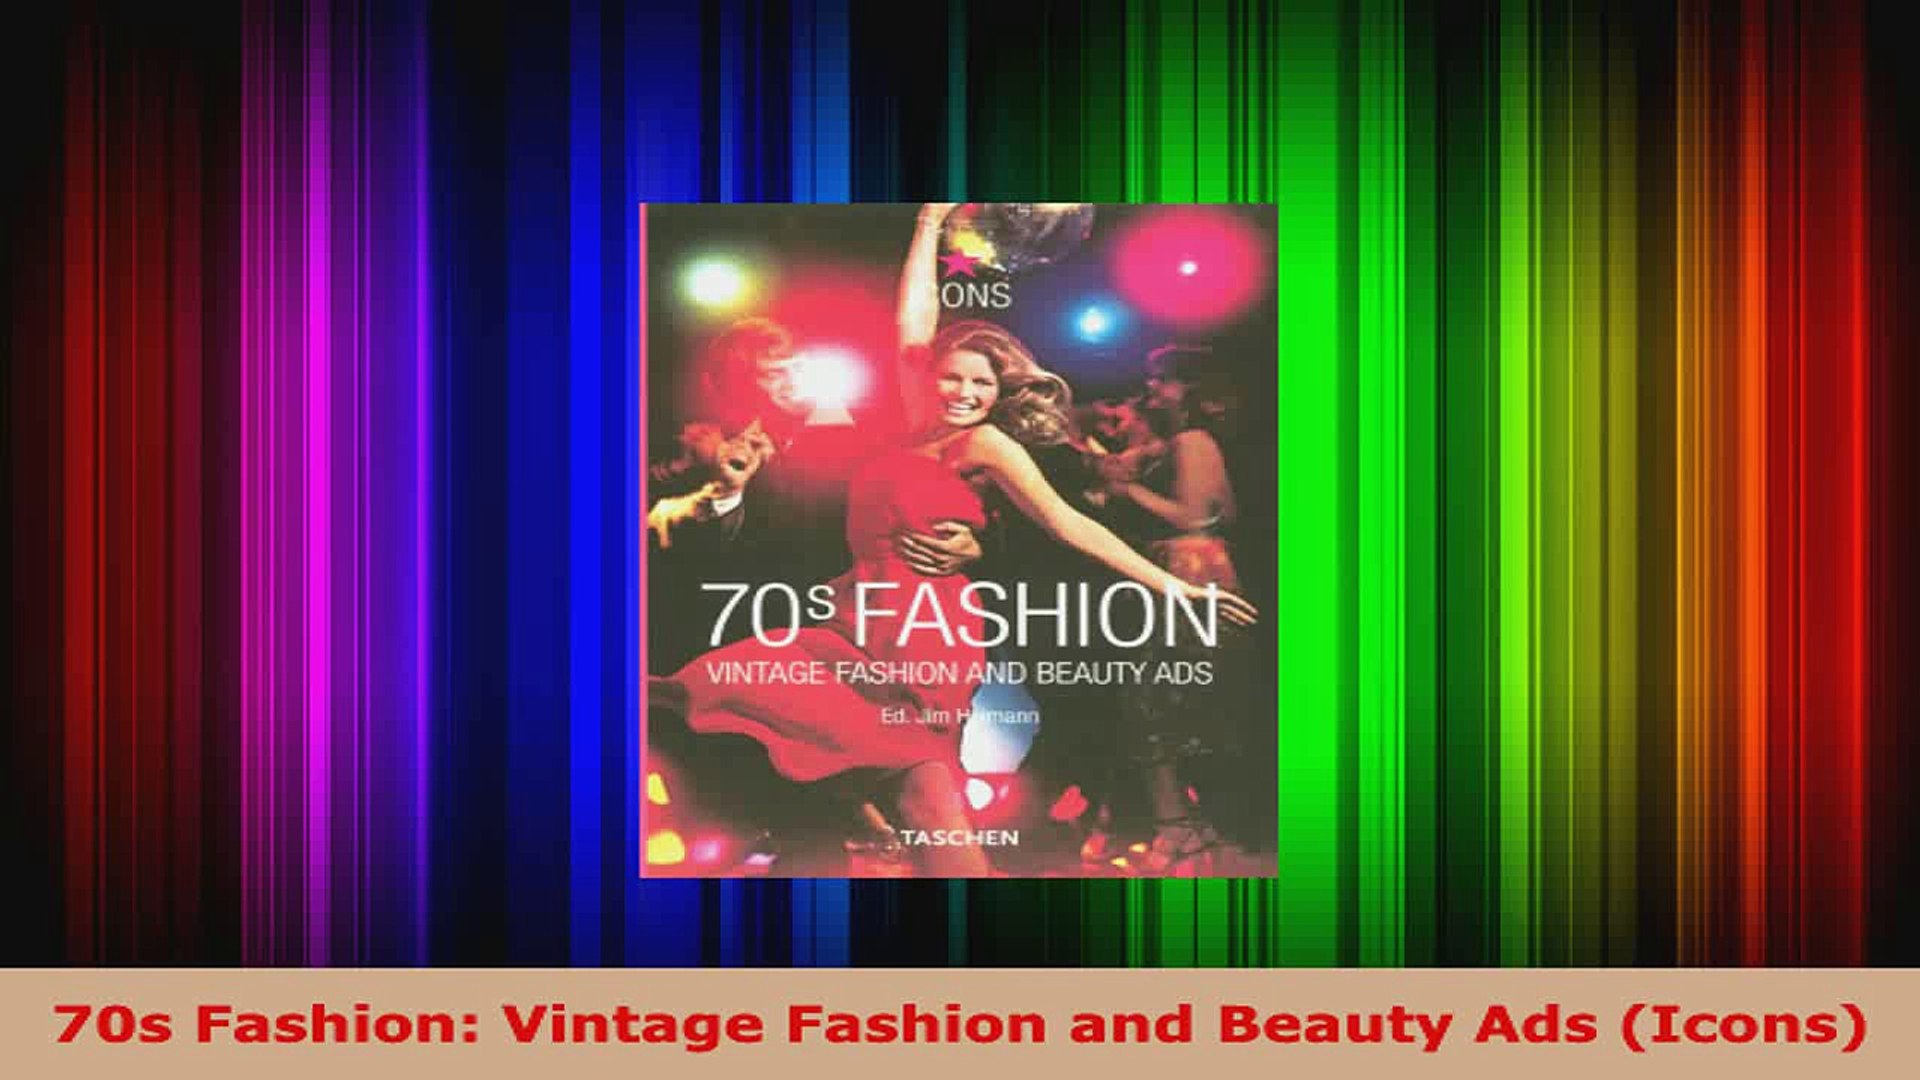 Download  70s Fashion Vintage Fashion and Beauty Ads Icons PDF Free